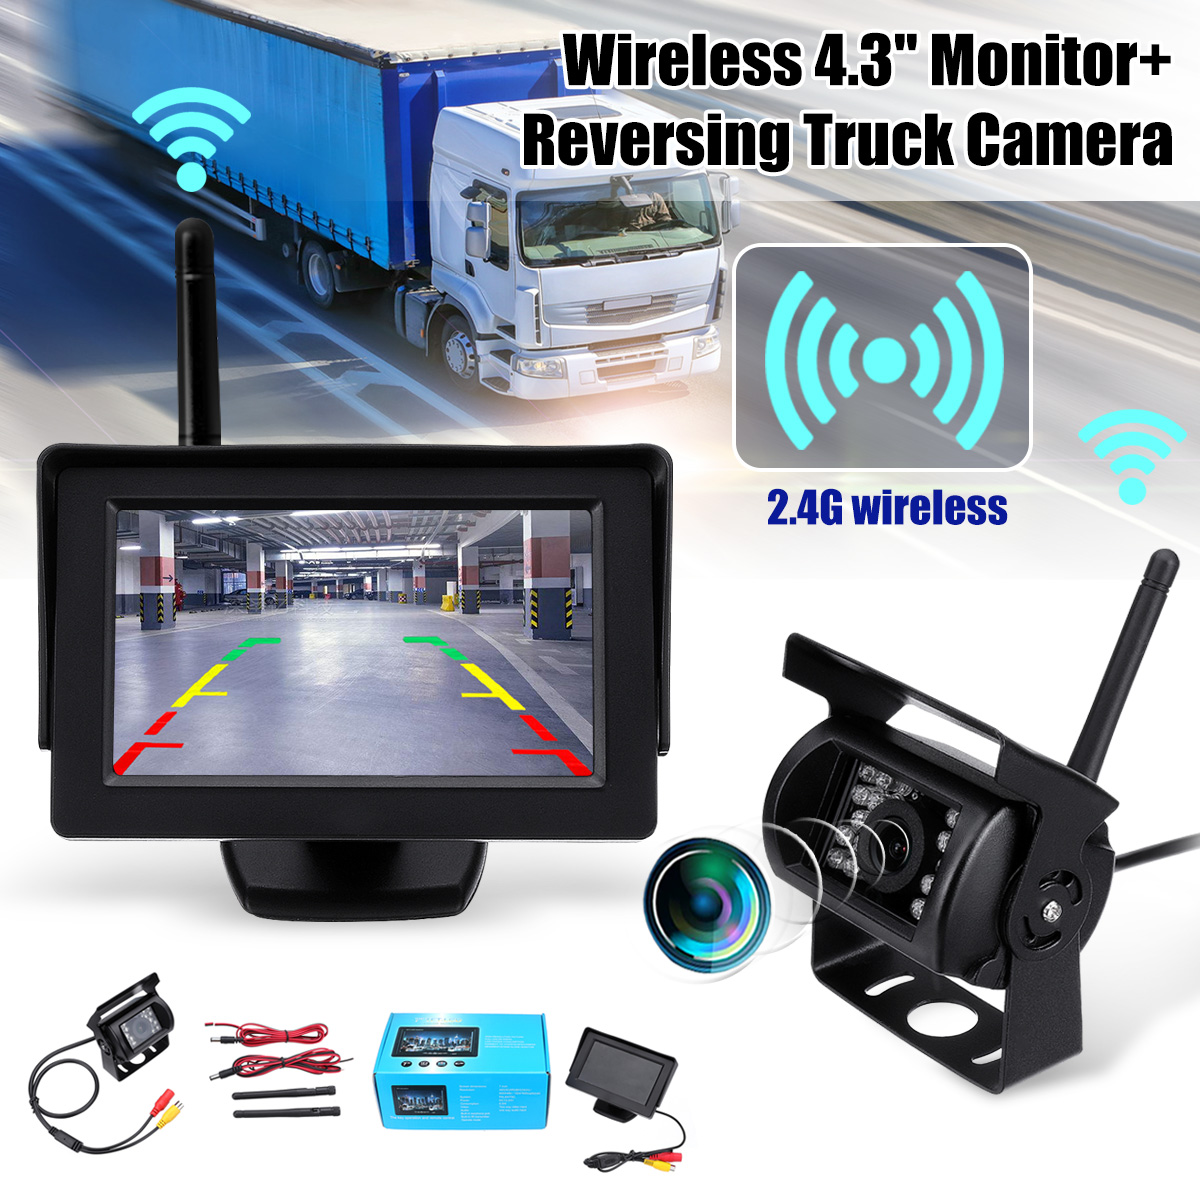 2.4G Wireless Car Rear View Backup Camera System Night Vision Vehicle Camera With 4.3 Inch Monitor For 12-24V Truck Trailer